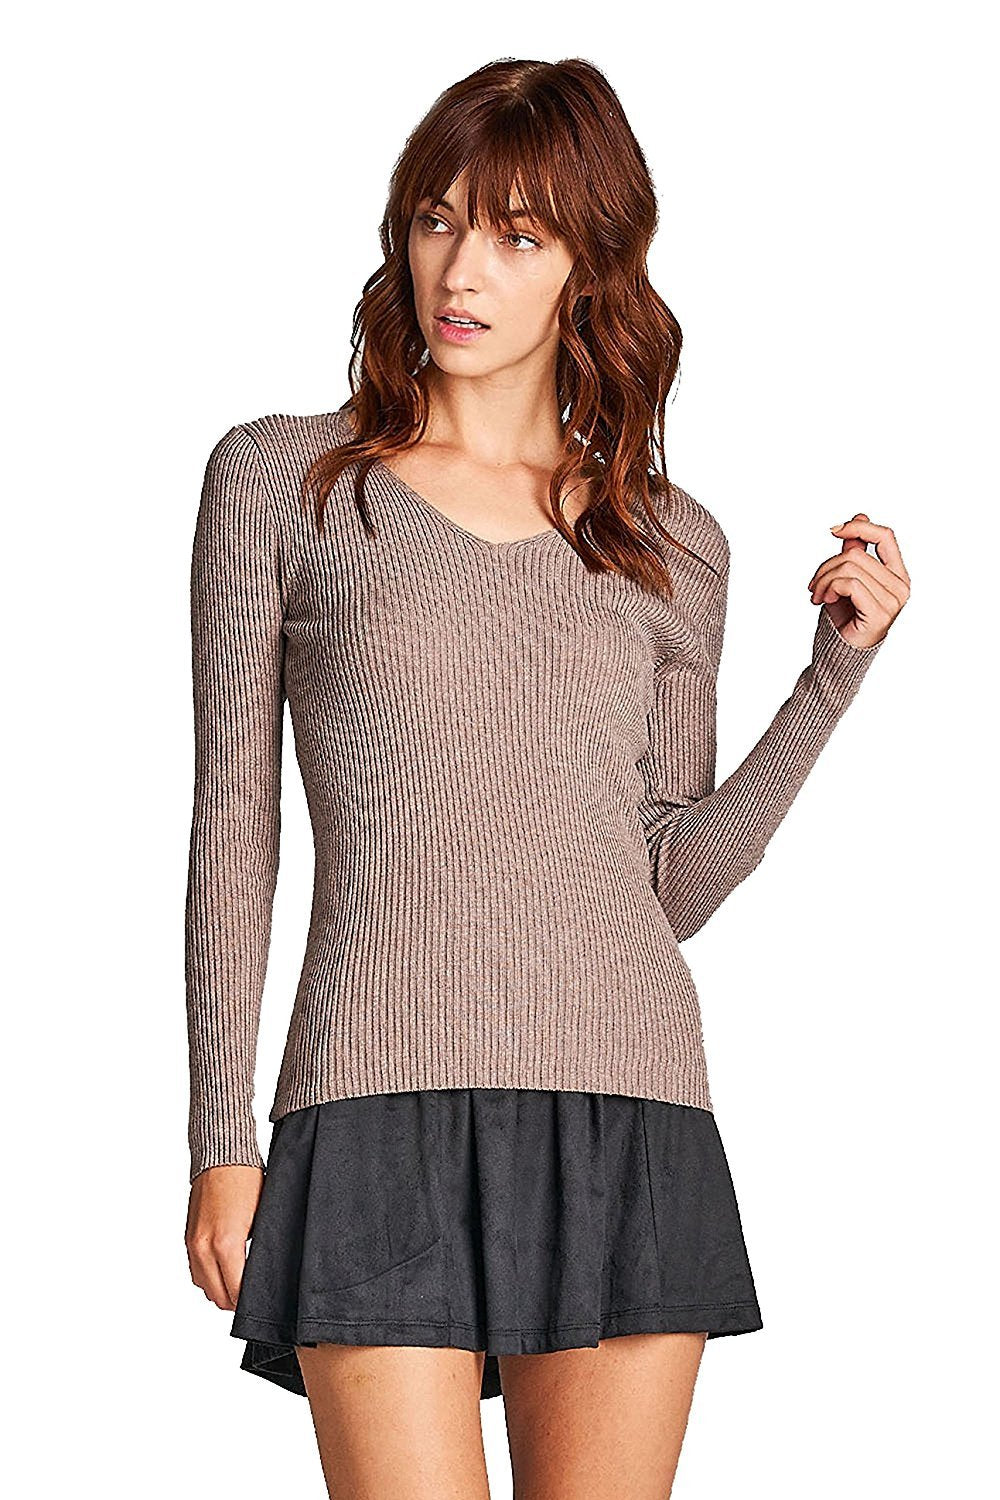 Khanomak Plain Solid Stretch Fitted Long Sleeve V Neck Ribbed Knit Lightweight Sweater Top